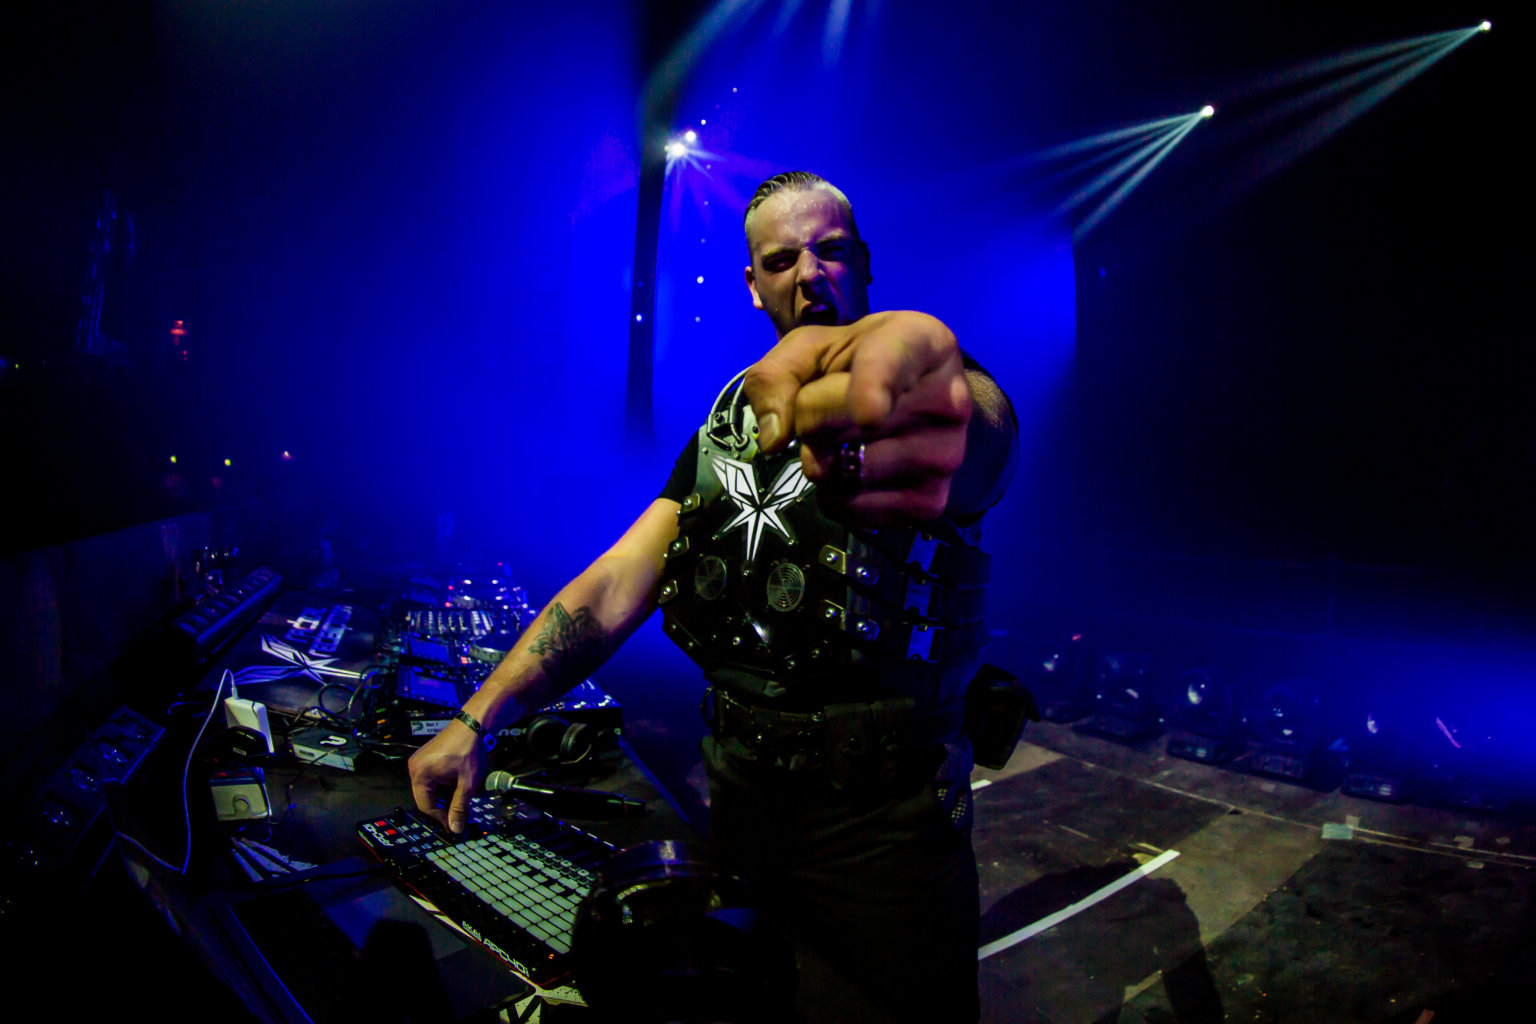 Radical Redemption event more info soon